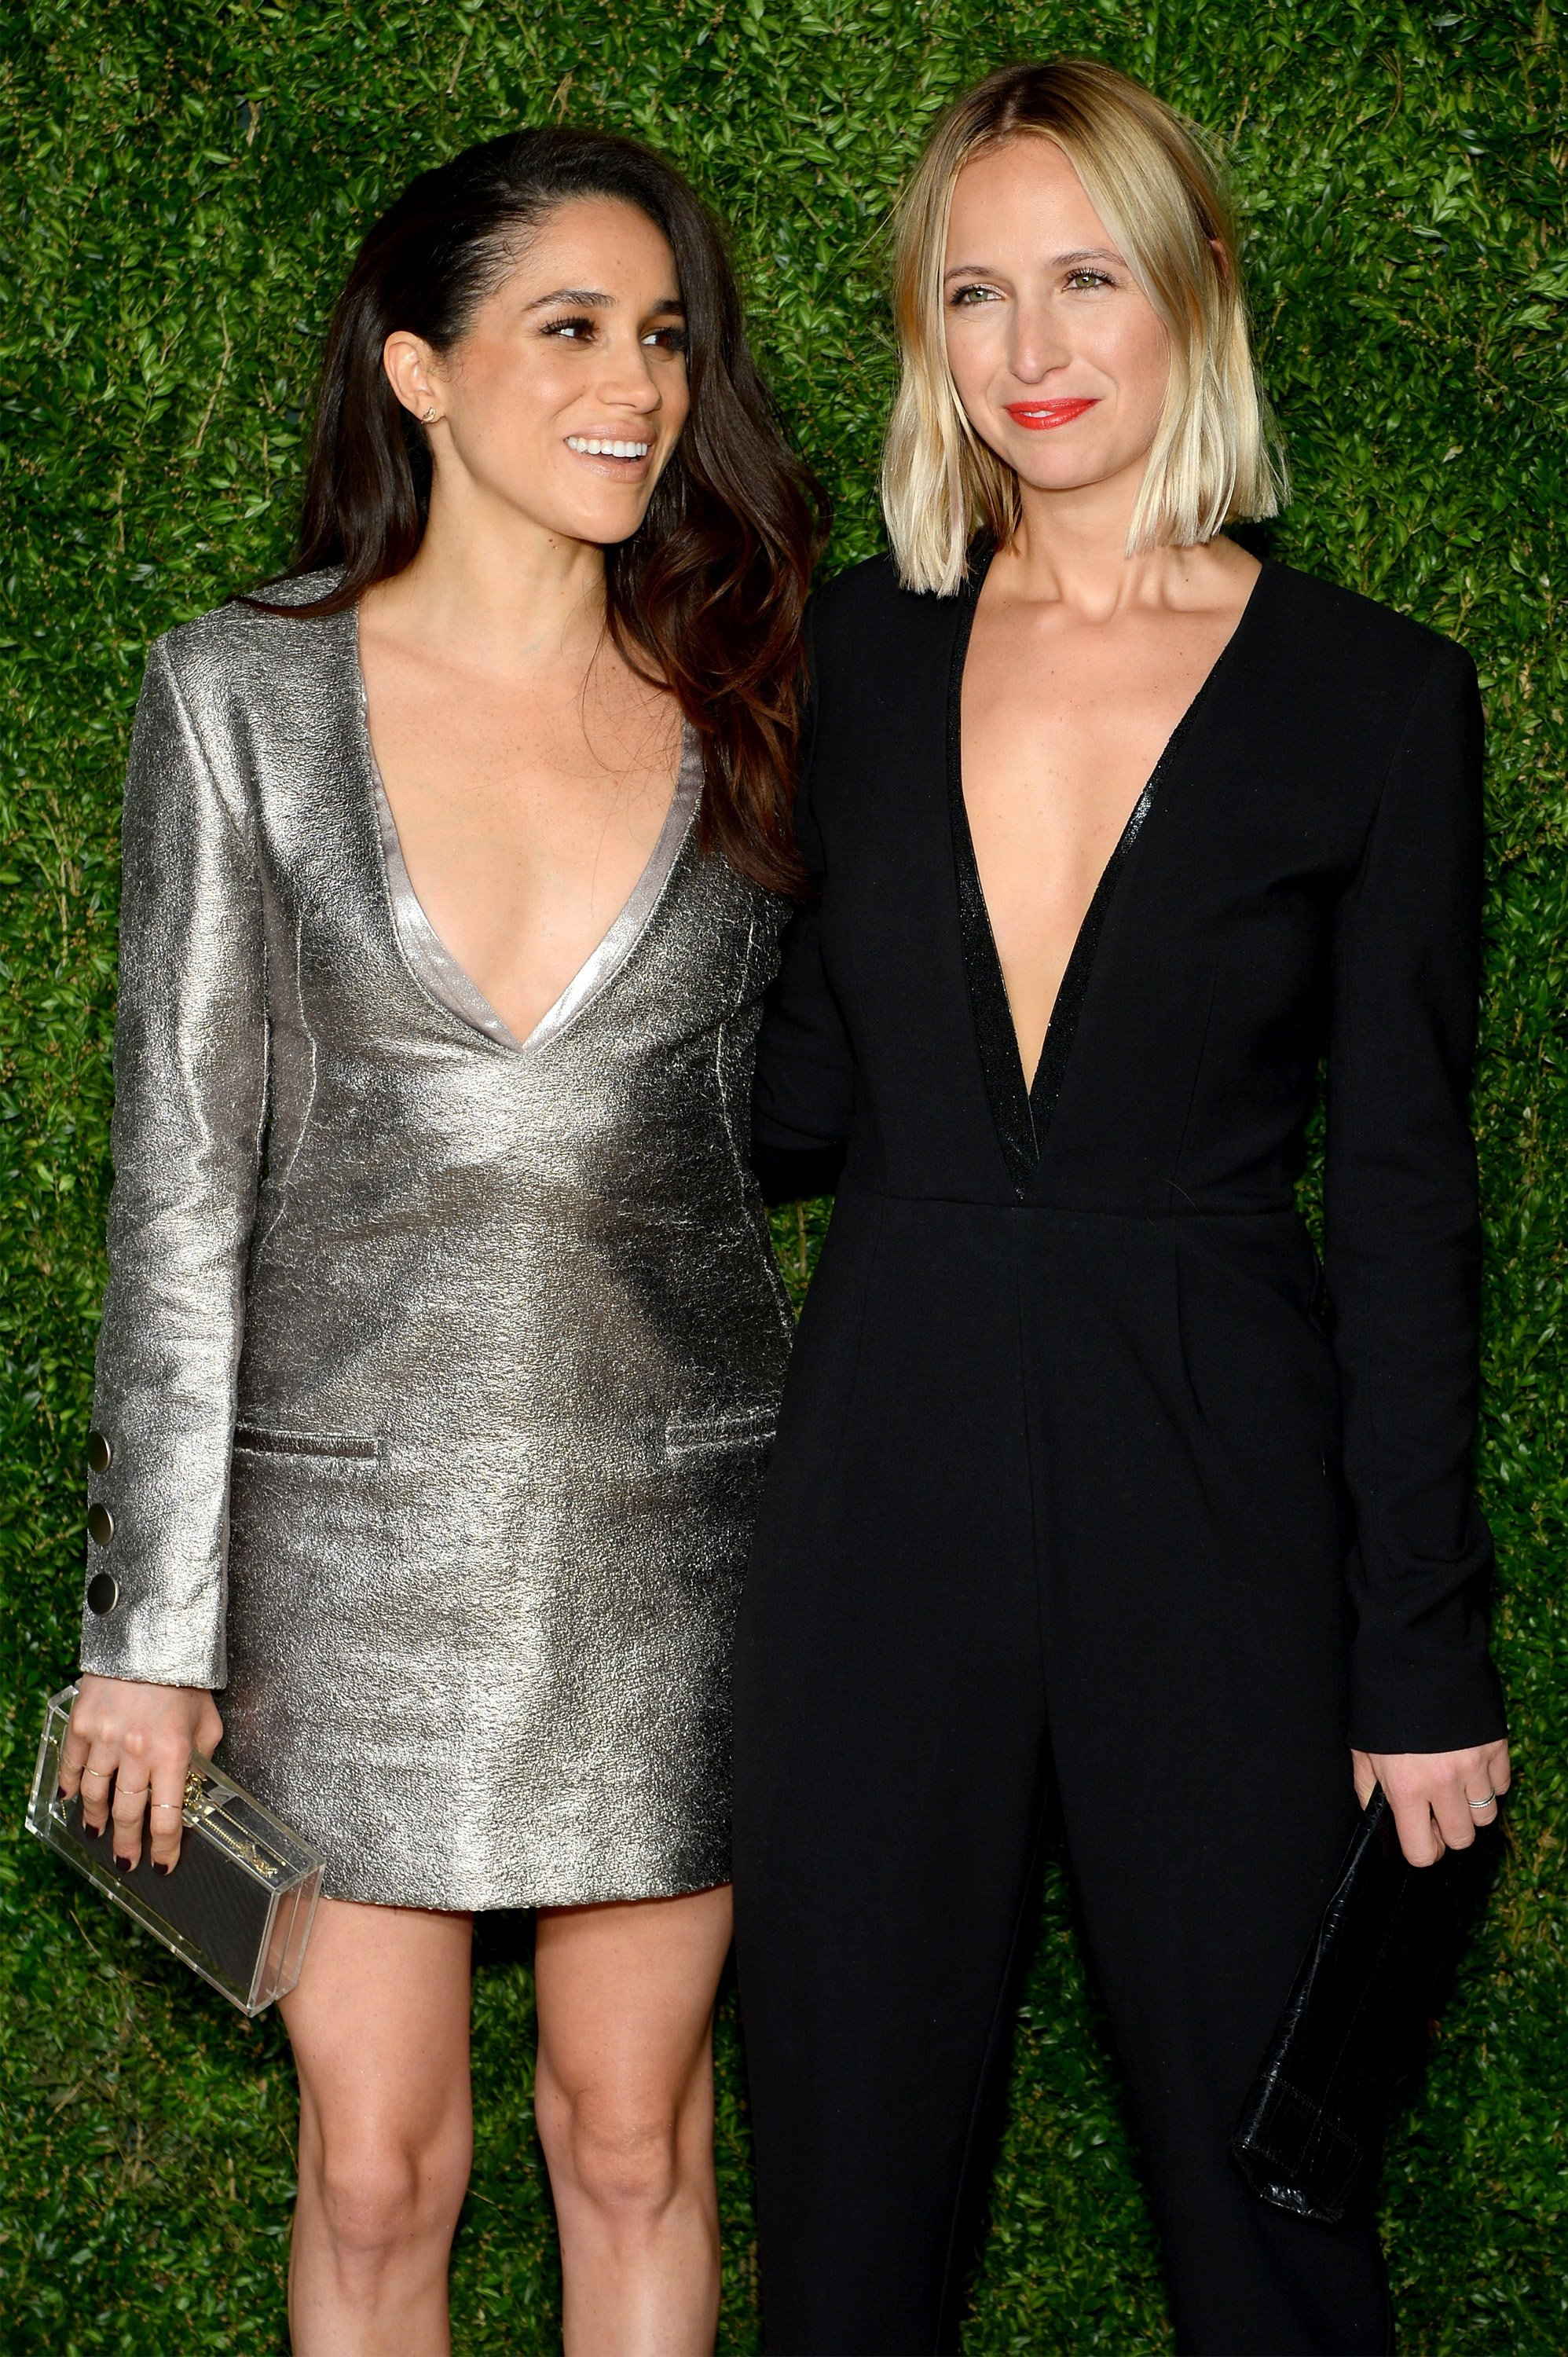 Meghan Markle and Misha Nonoo at the 12th annual CFDA/Vogue Fashion Fund Awards at Spring Studios in New York City | Photo: Getty Images